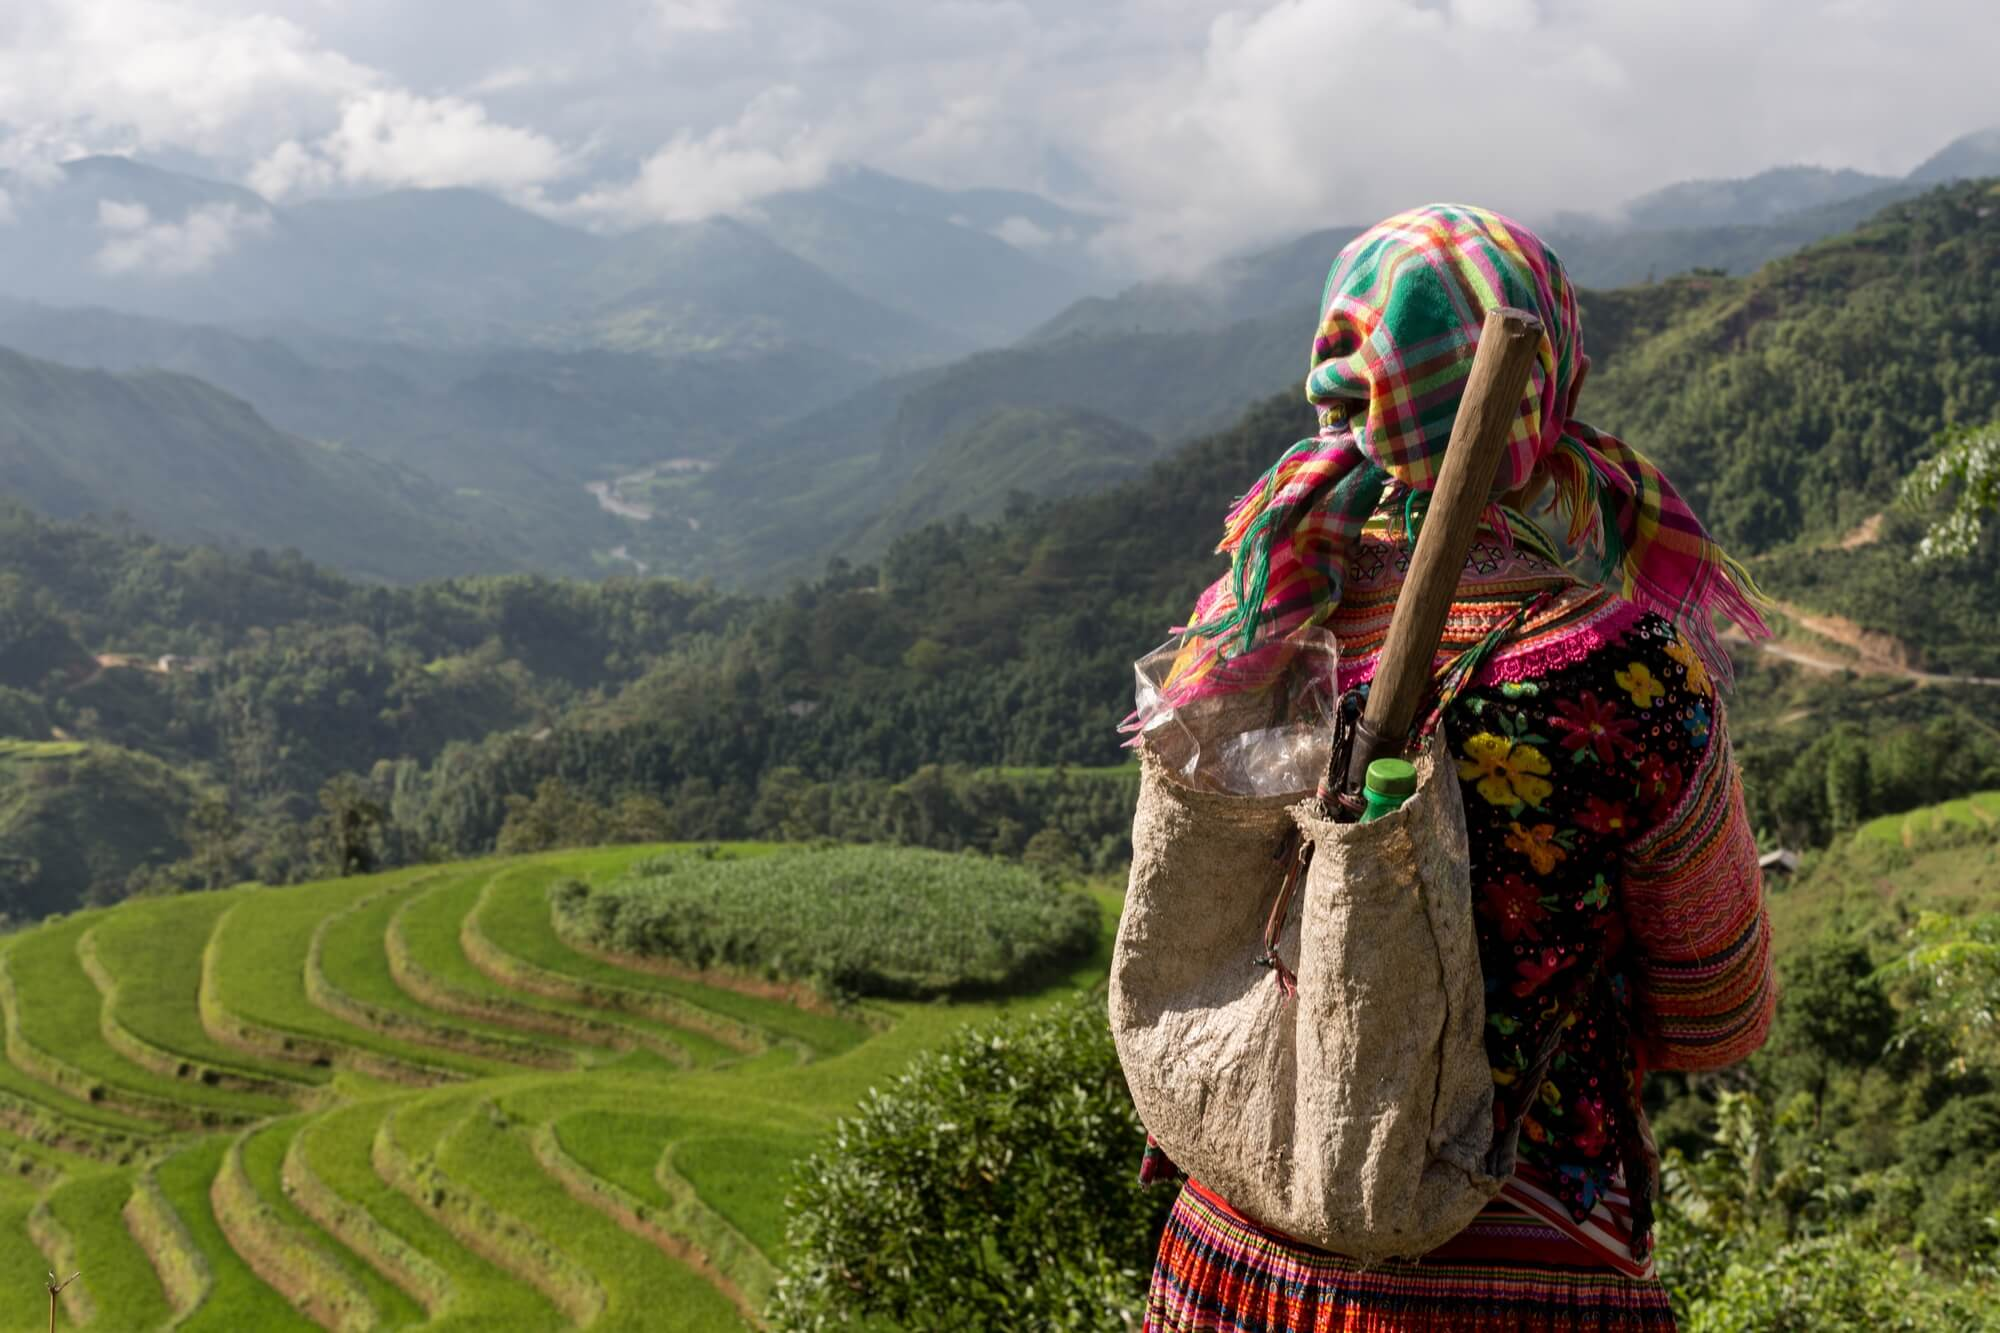 Vietnam ethnic minority over viewing rice terraces